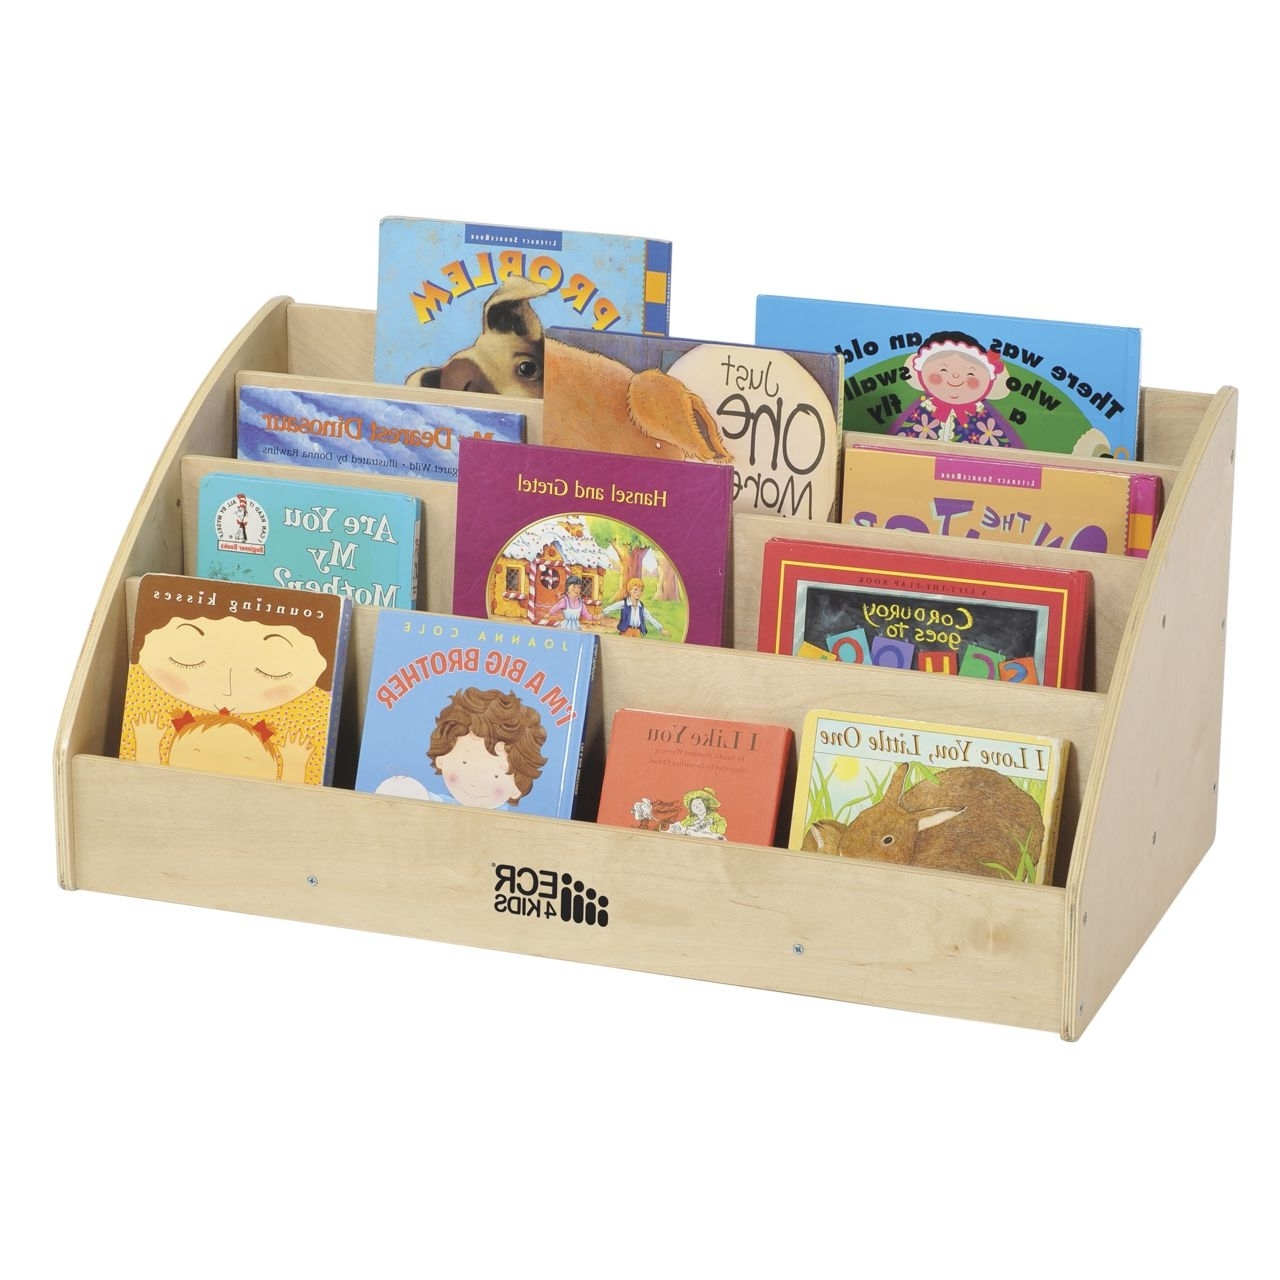 Toddler Bookcases For Newest Ecr4kids Toddler Birch Book Display (View 3 of 15)